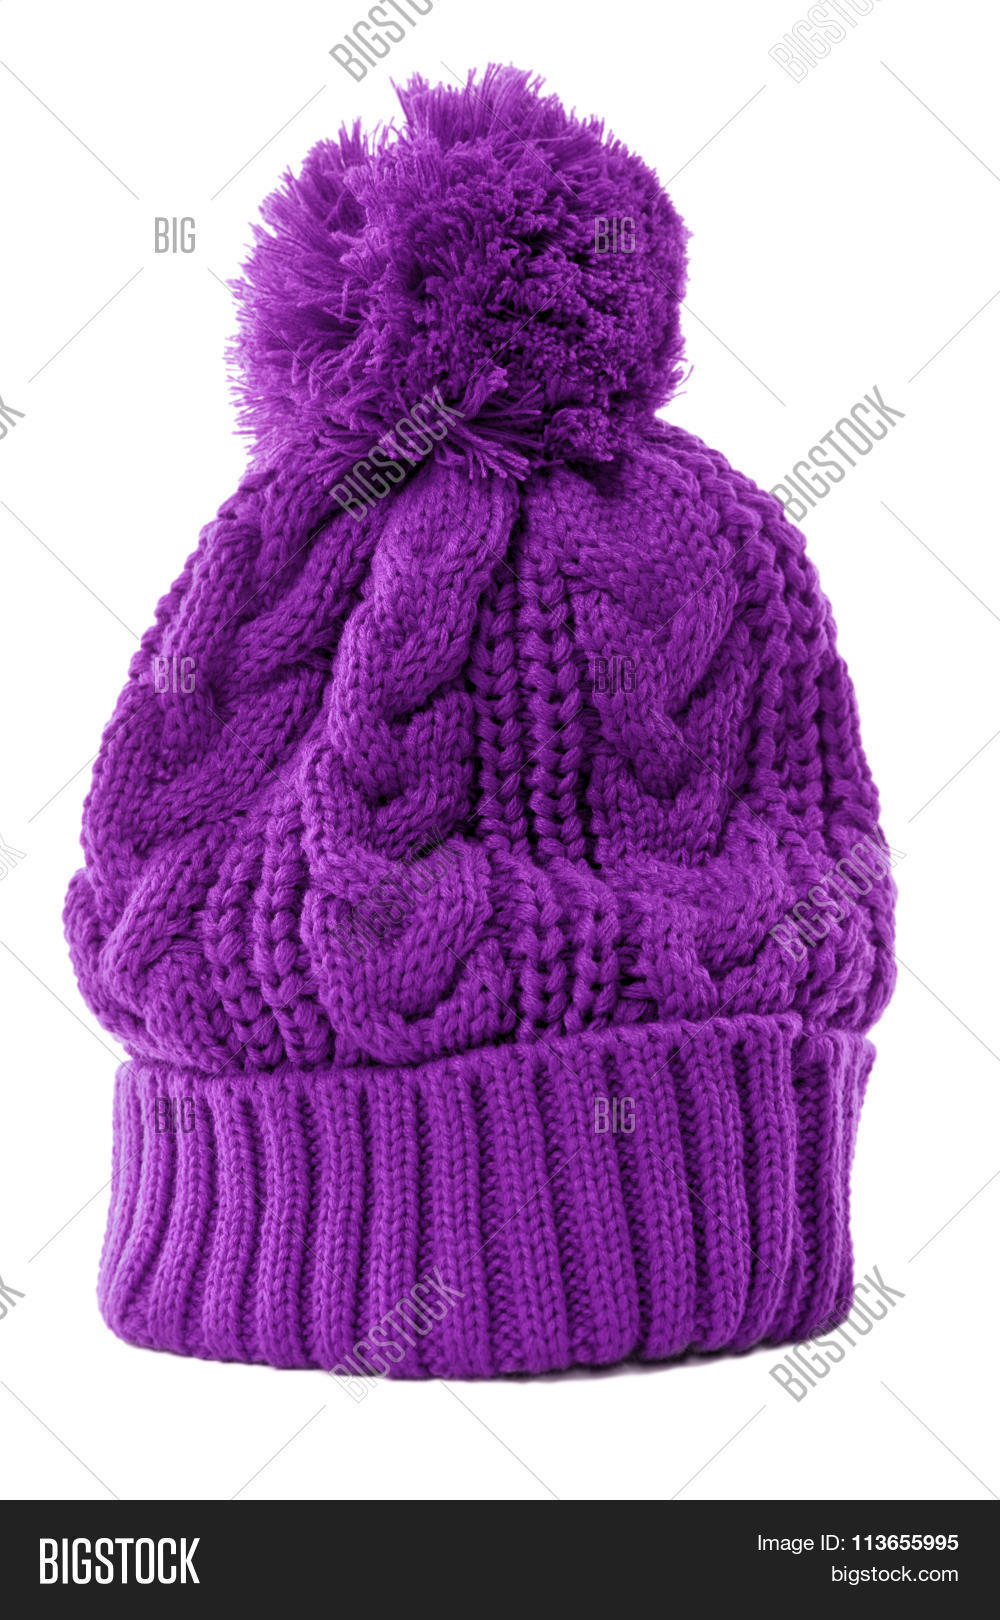 b1c772db108 Purple winter ski hat or knit hat isolated against a white background.